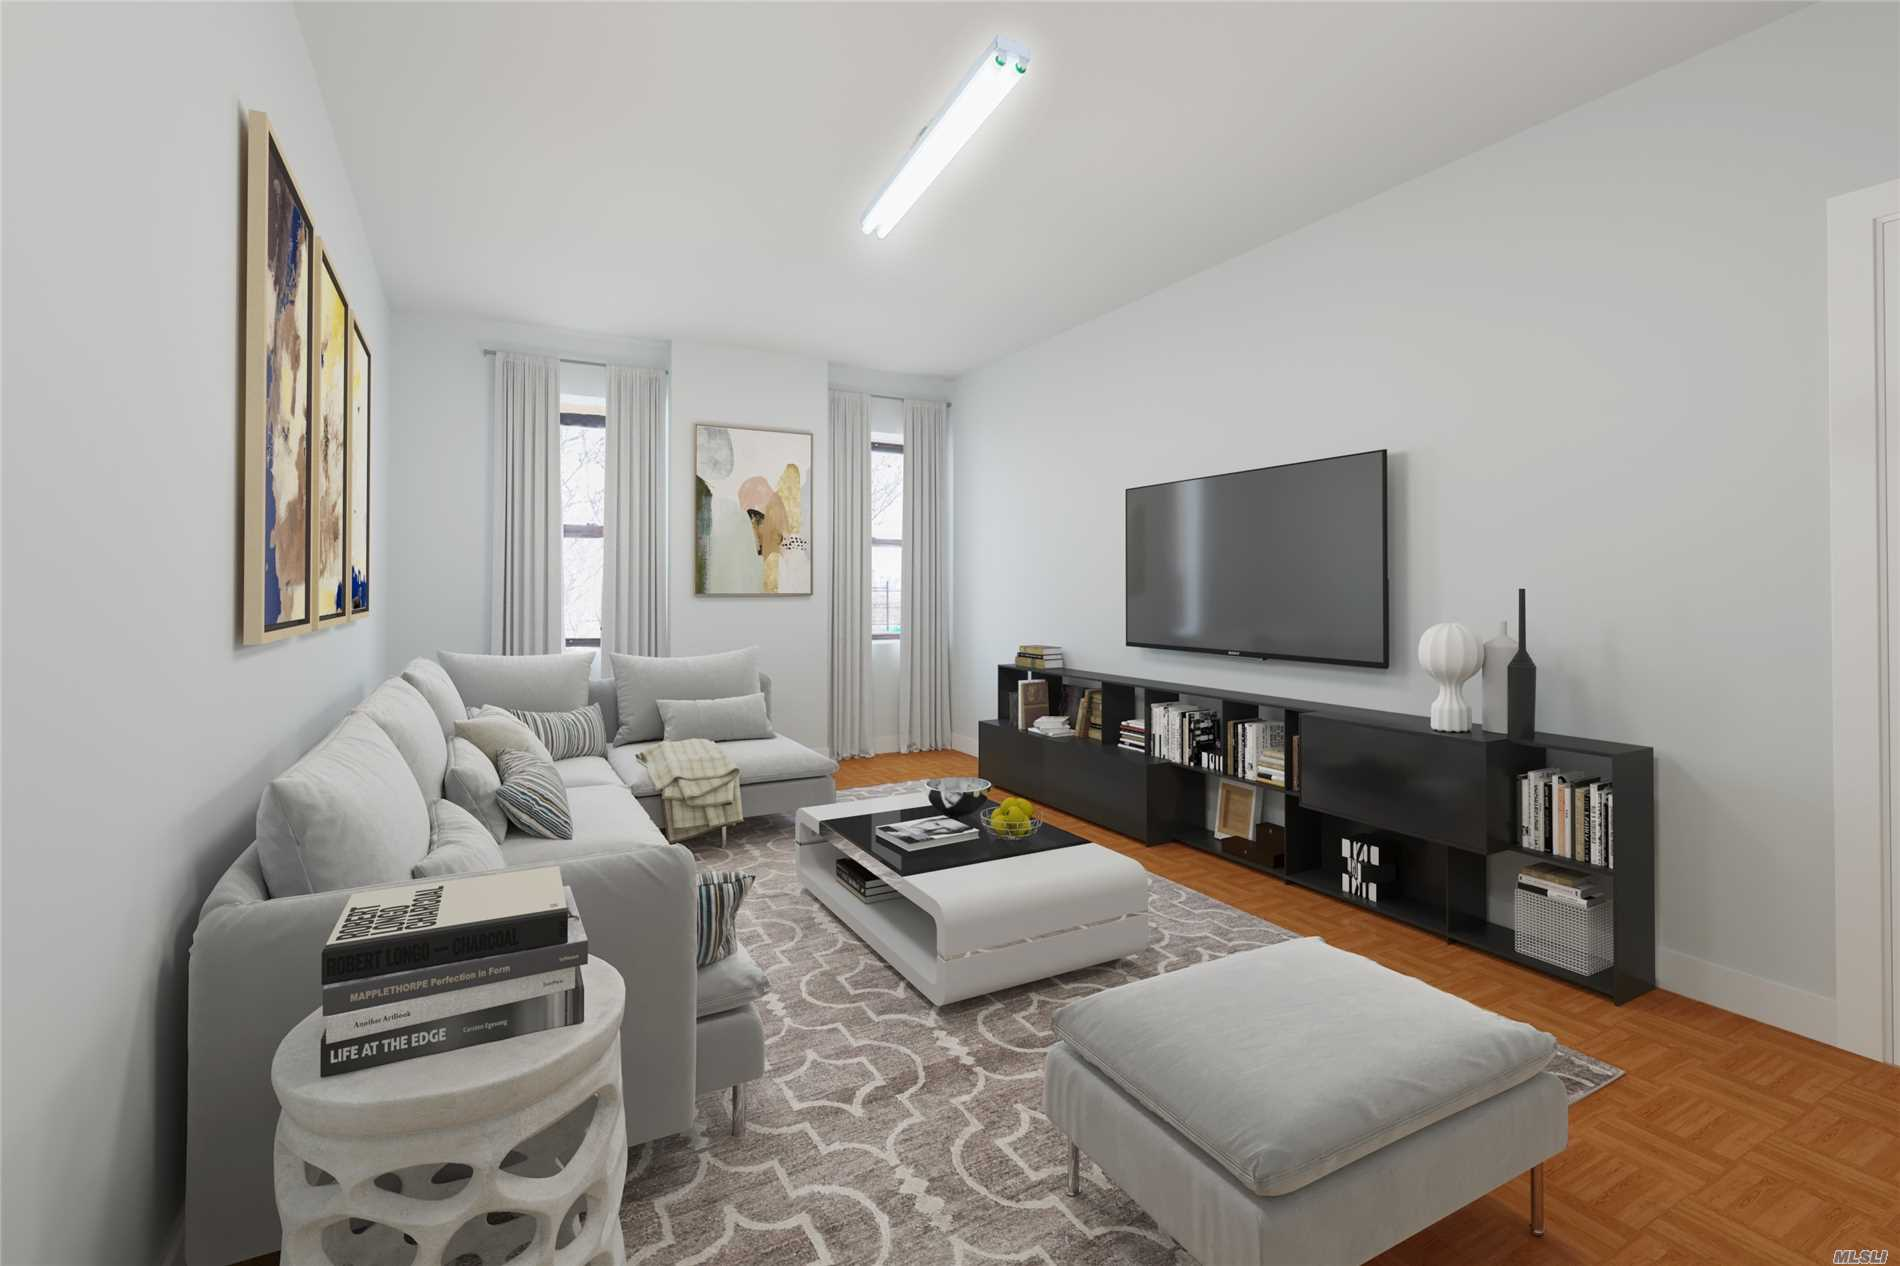 Manhattan Skyline View, Large & Bright Two Bedroom Apartment Located In A Great Location In The Heart Of Jackson Heights. One Block From E, F, R, M, And 7 Trains And Near The Bus Depot, Elmhurst Hospital & LIRR.15 Minutes Away From Manhattan. Close to Highway, Supermarket, Bank, Restaurant and All other community amenities. Commuters Dream.Photos are virtually Staged.